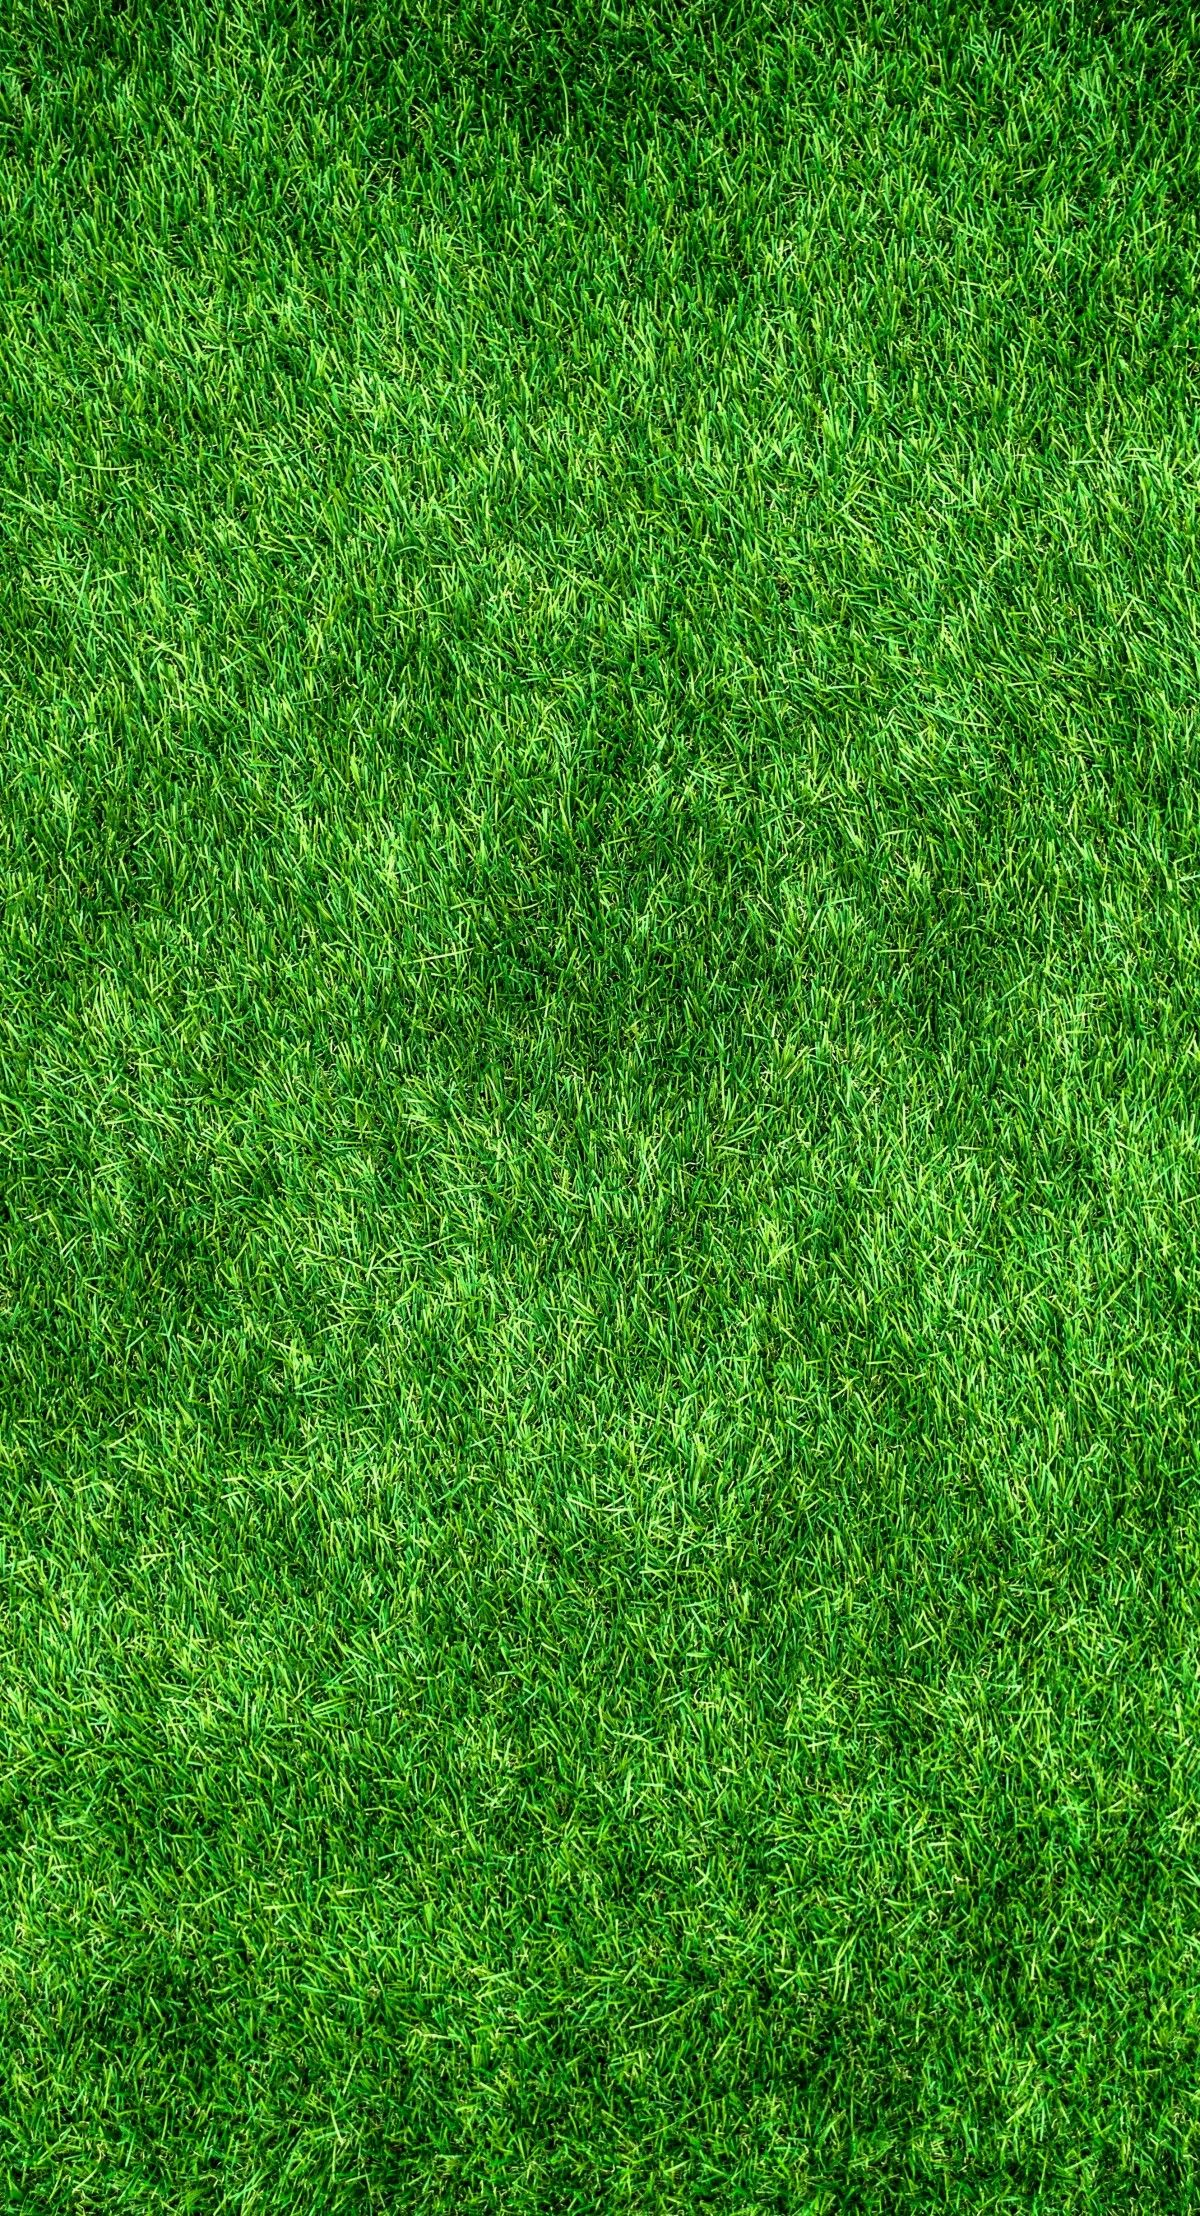 nature_green_abstract_plants_herb_grass_artificial_turf_gregarious-495269.jpg!d (1200×2216)